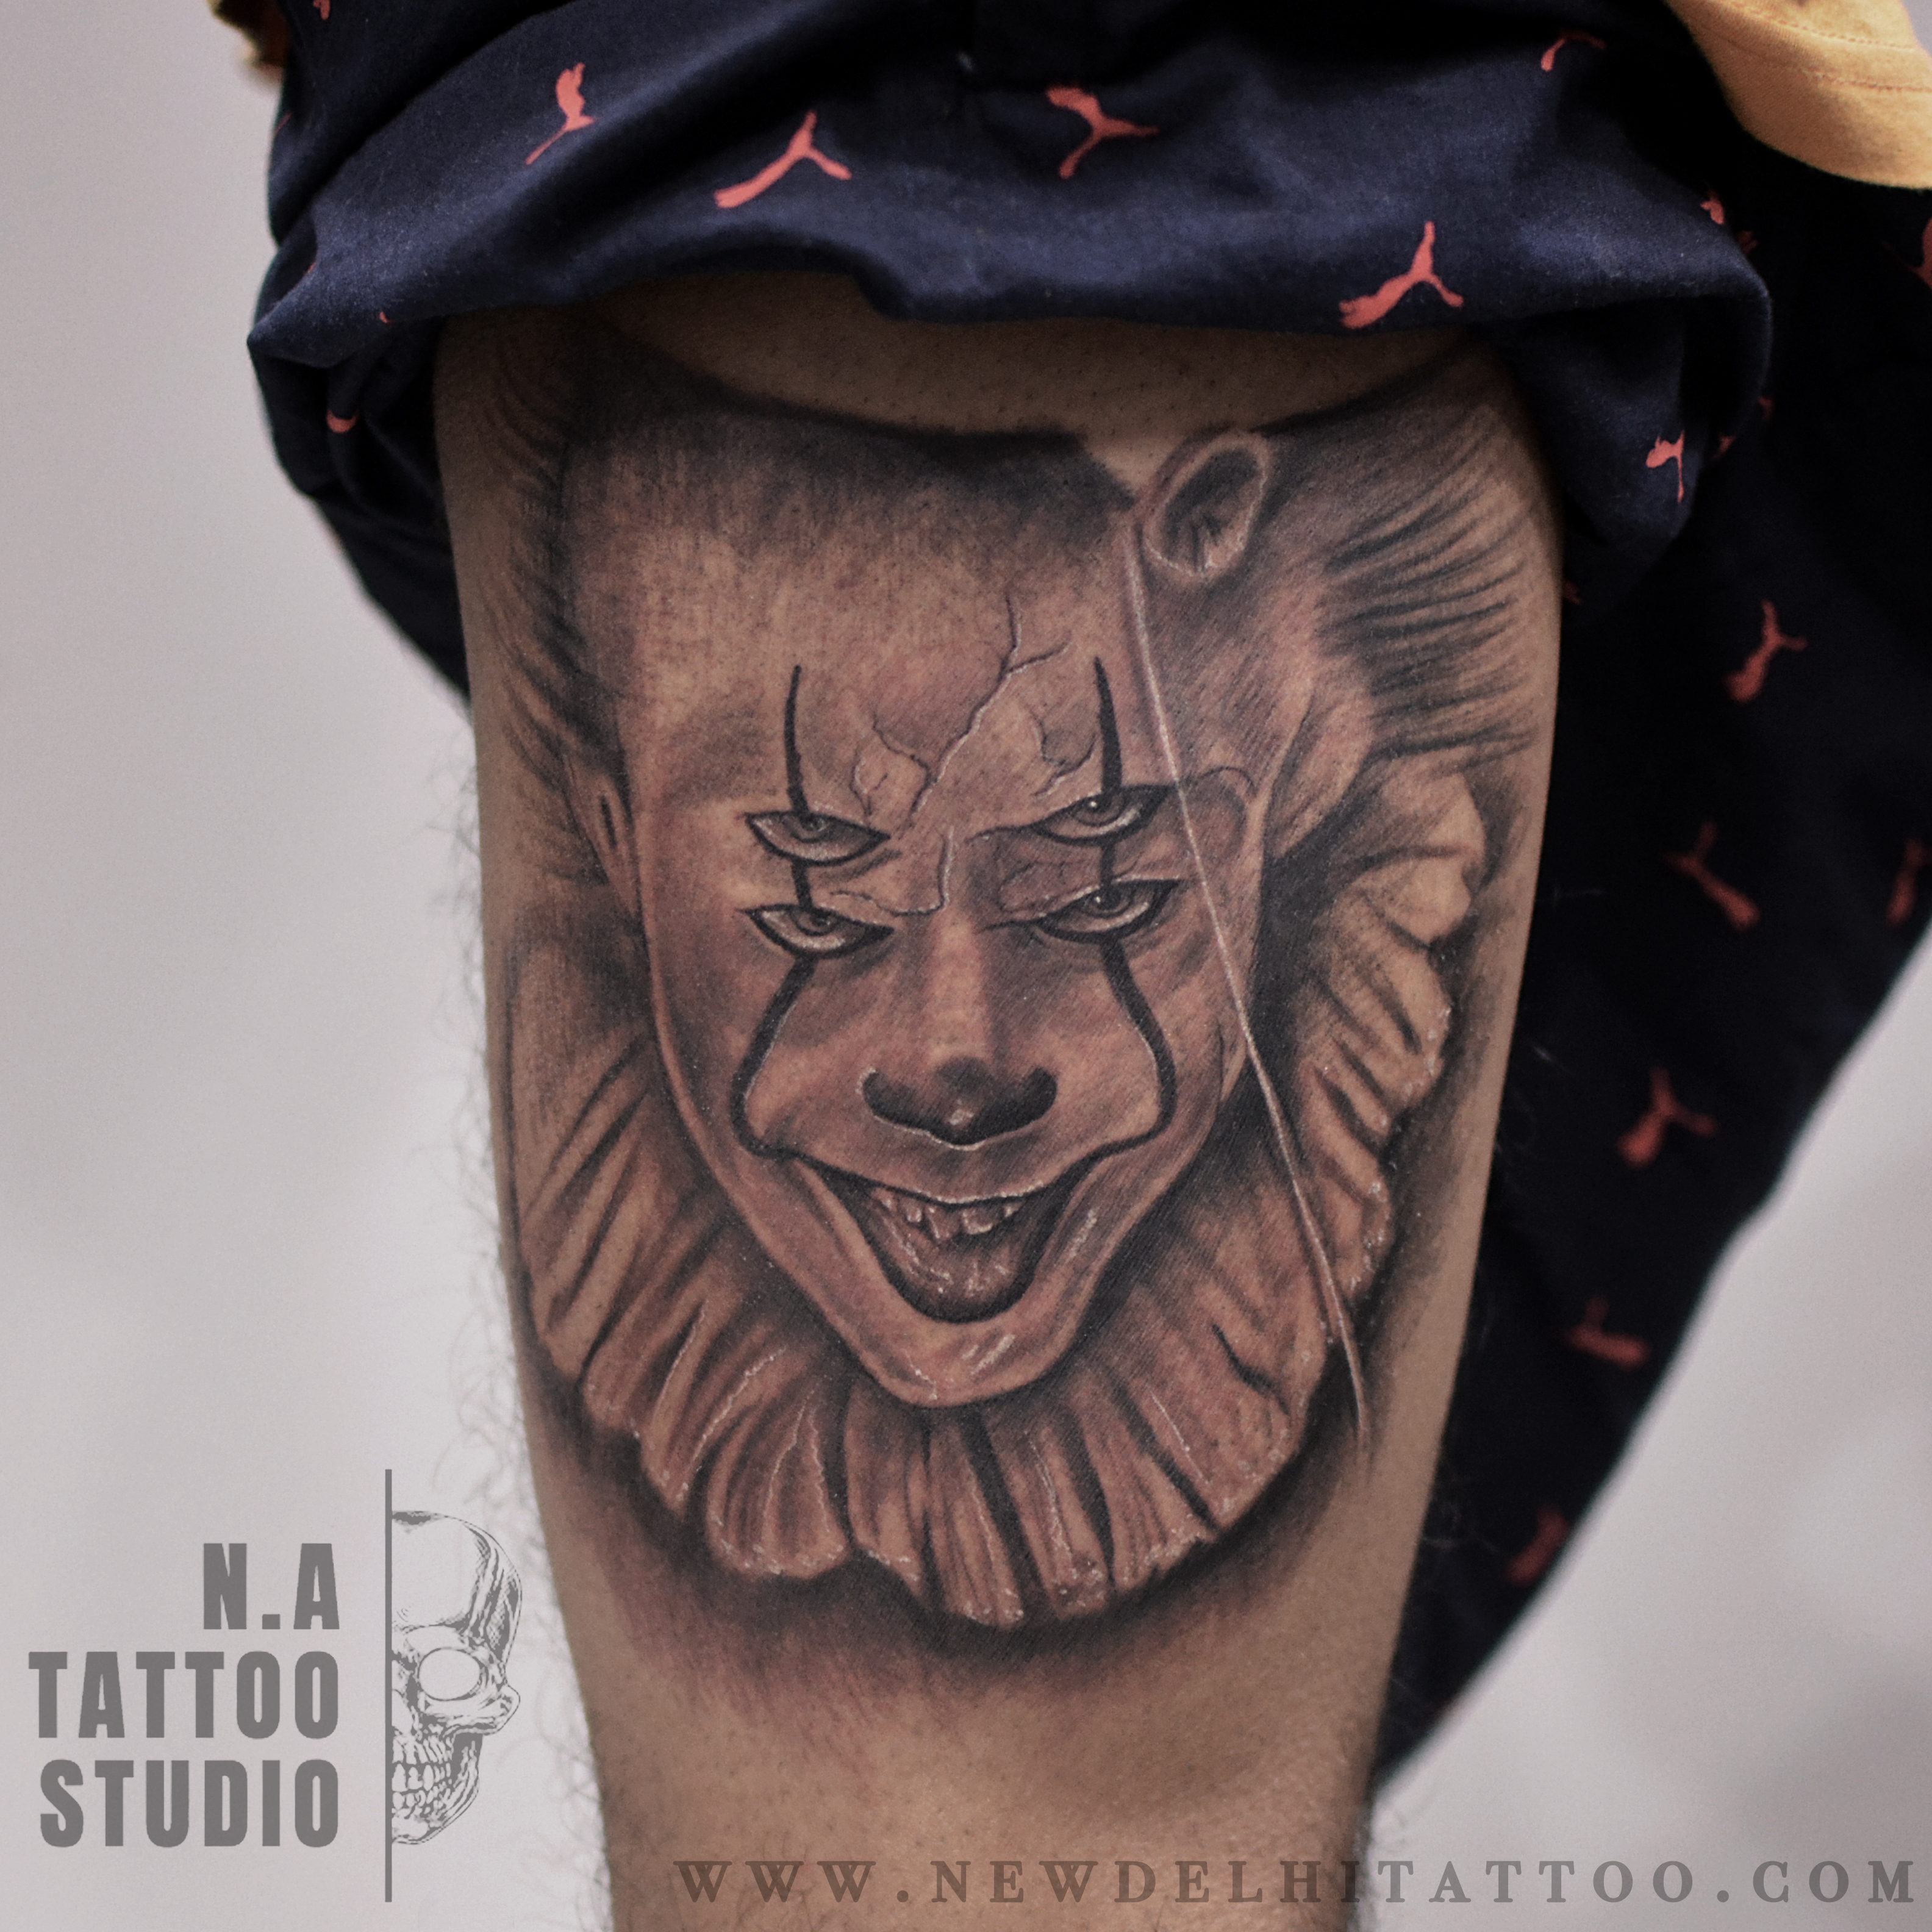 pennywise tattoo natattoostudio